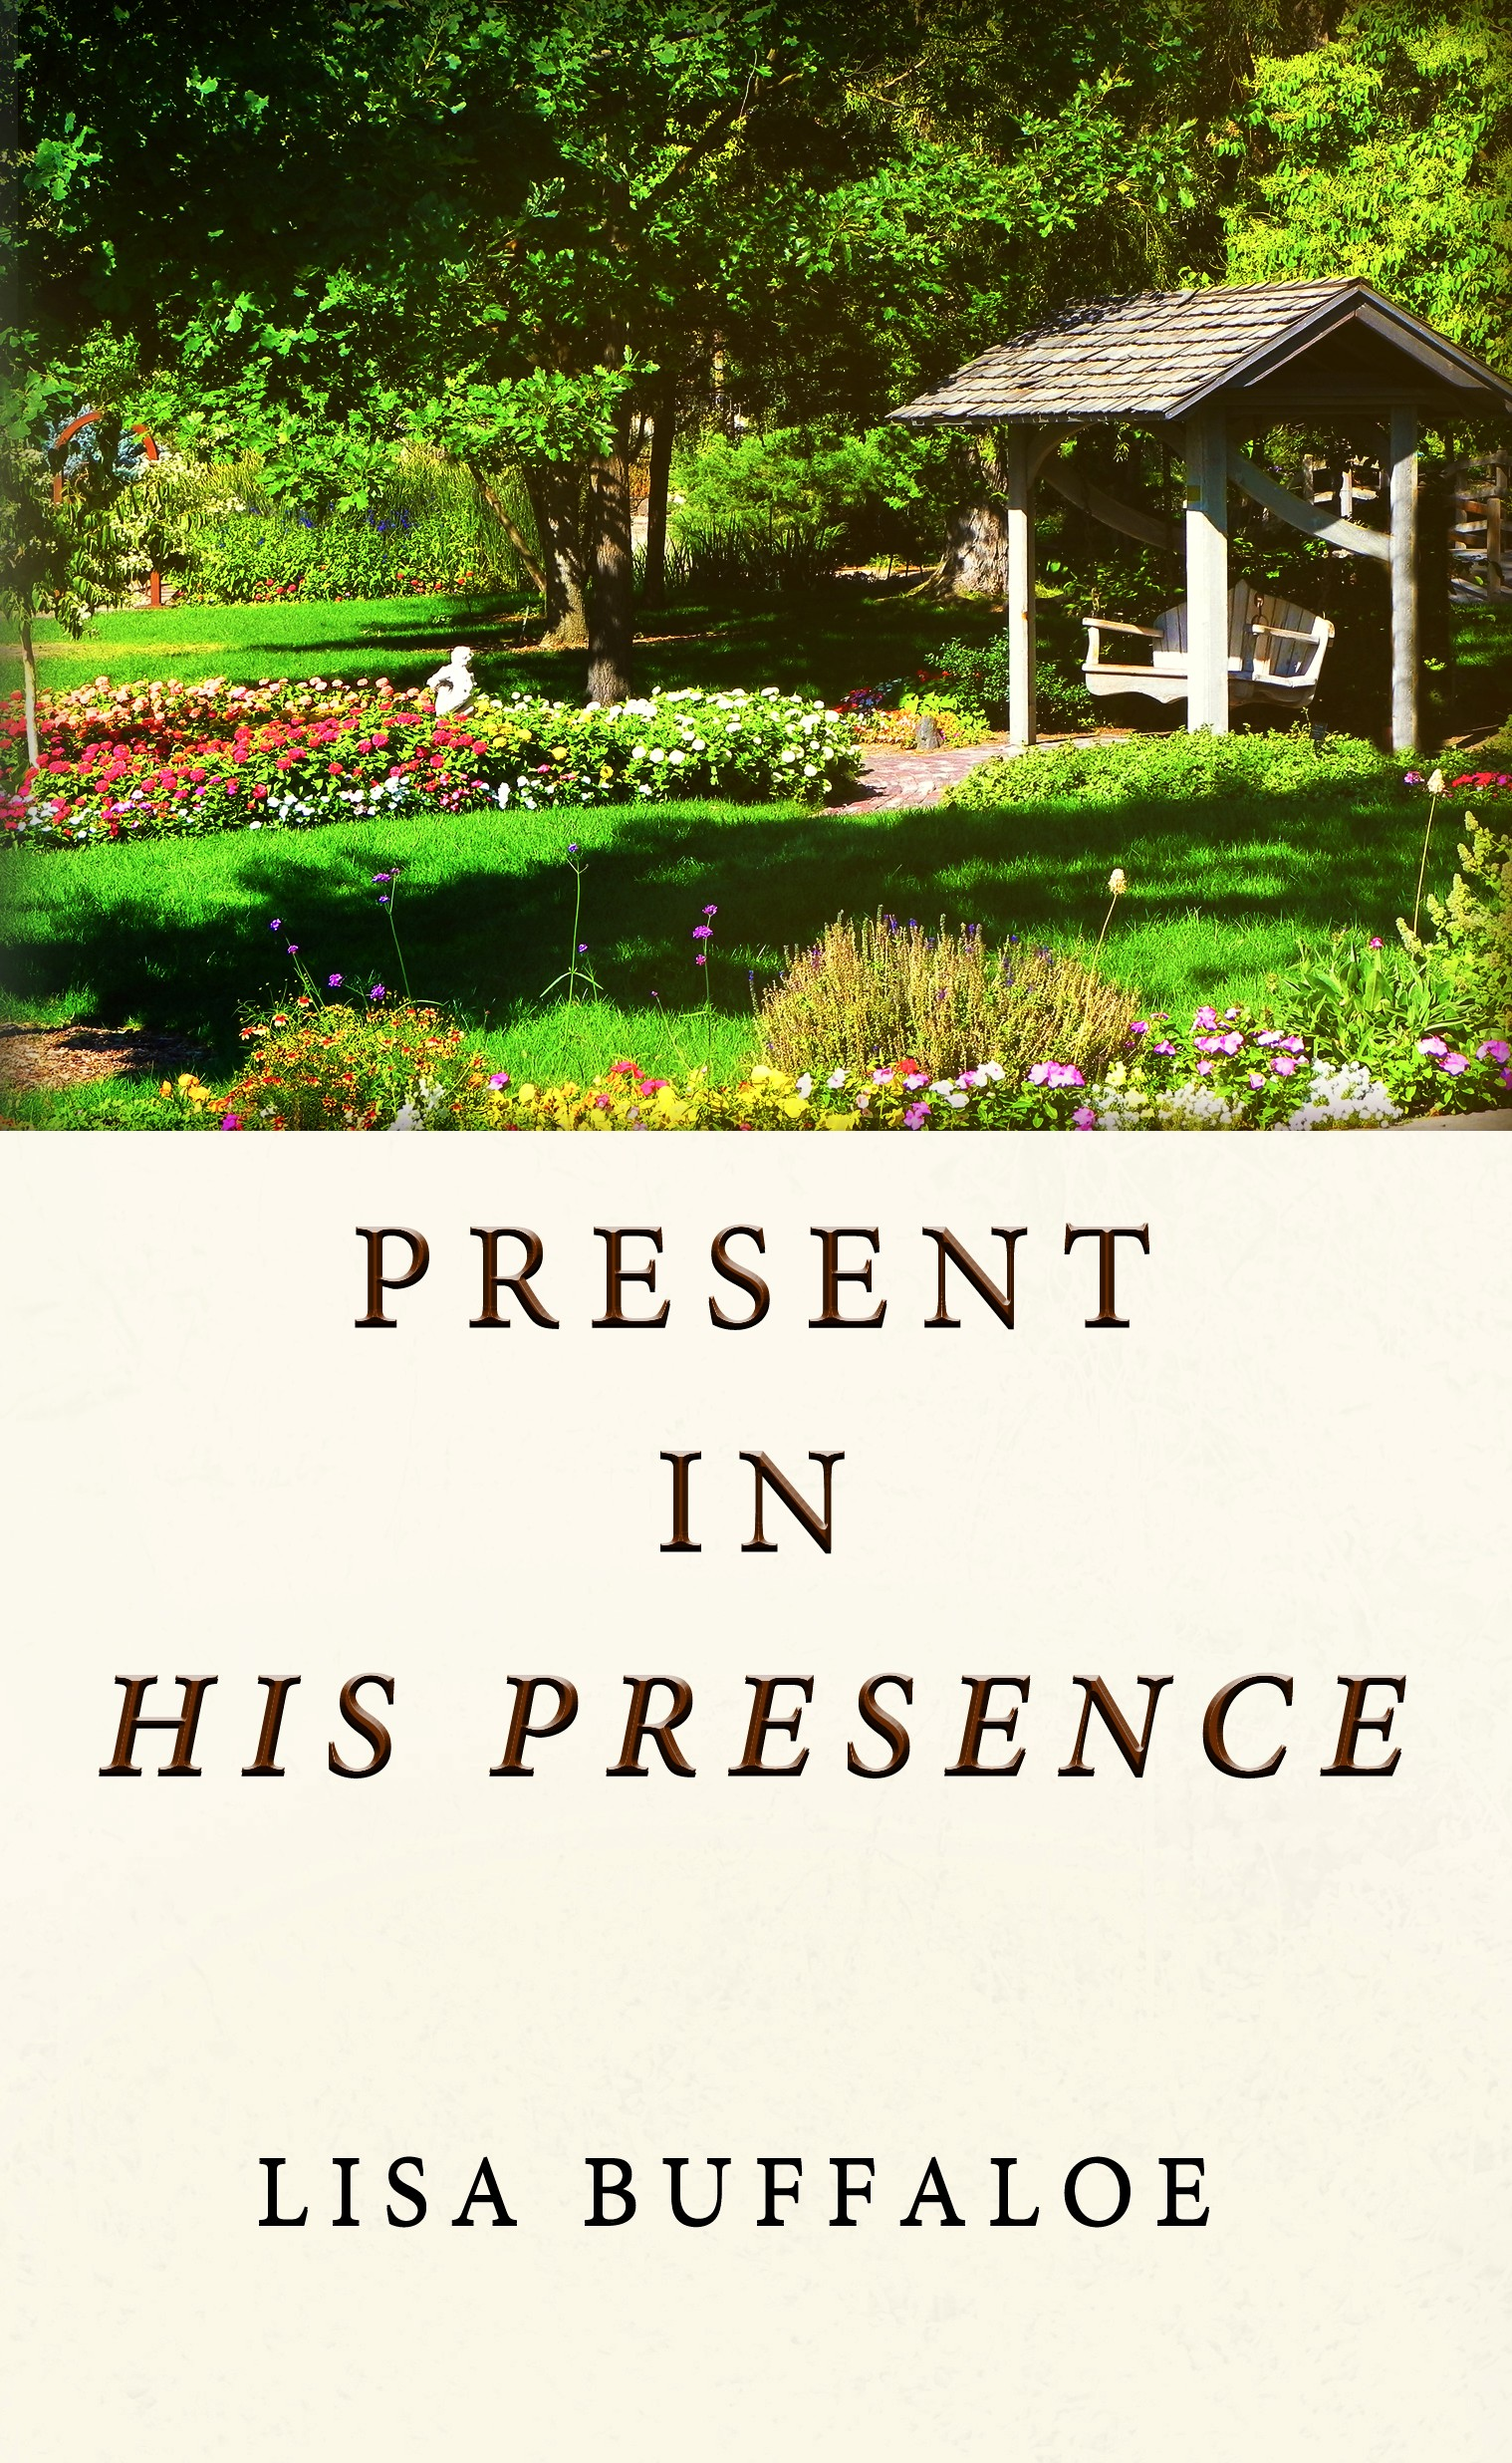 Present in His Presence by Lisa Buffaloe